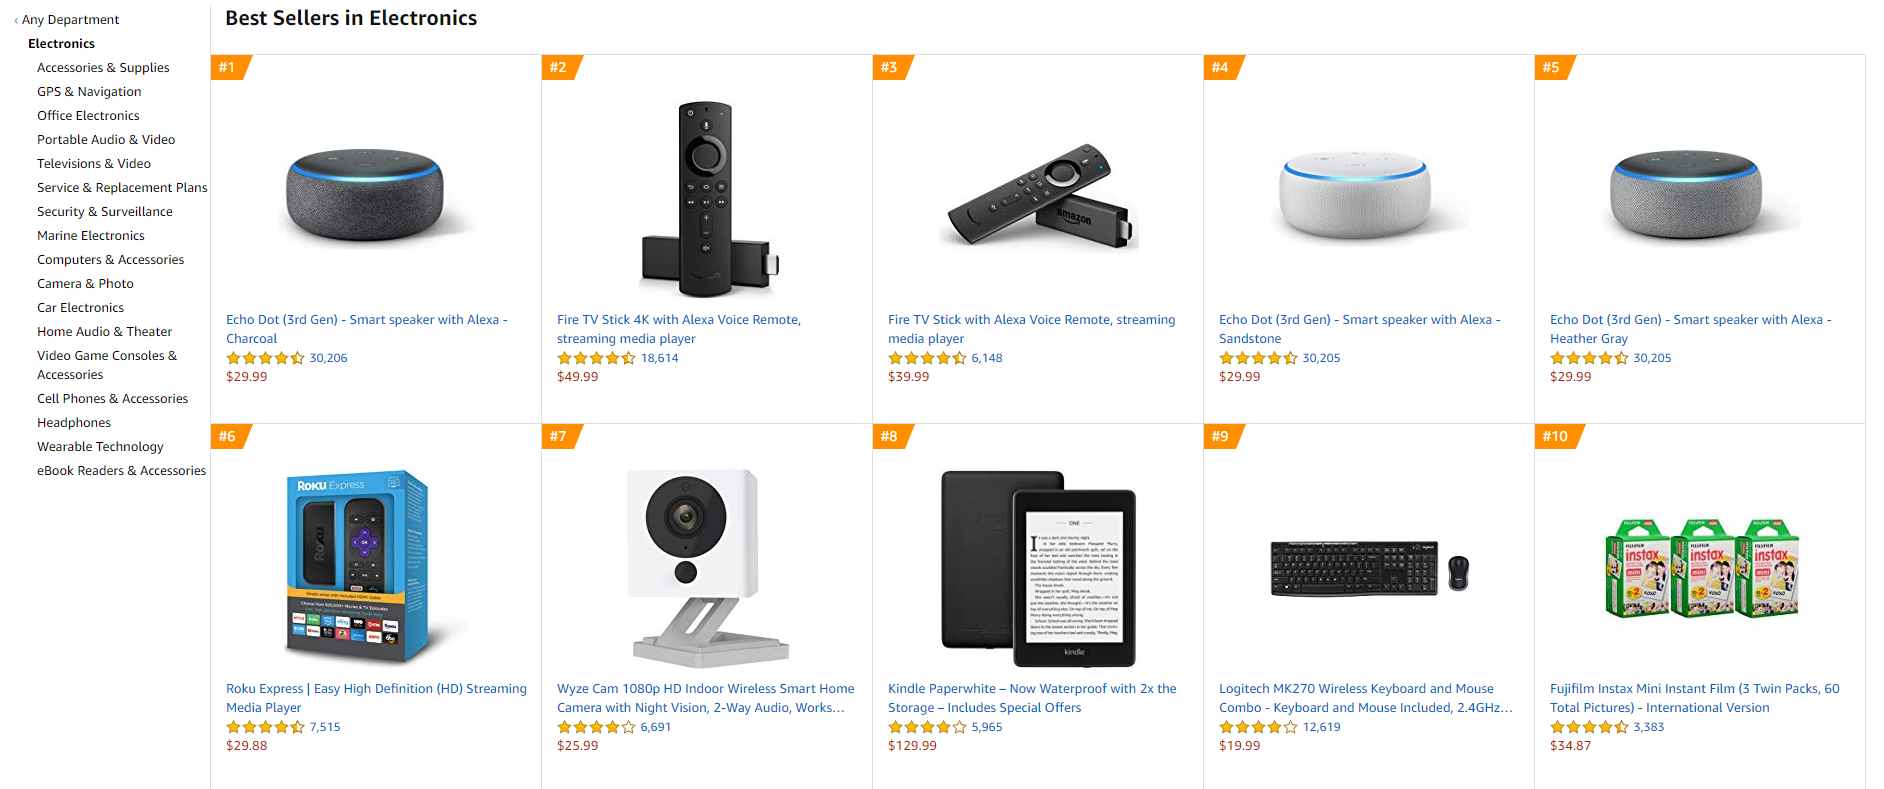 Best sellers in elecotrnics